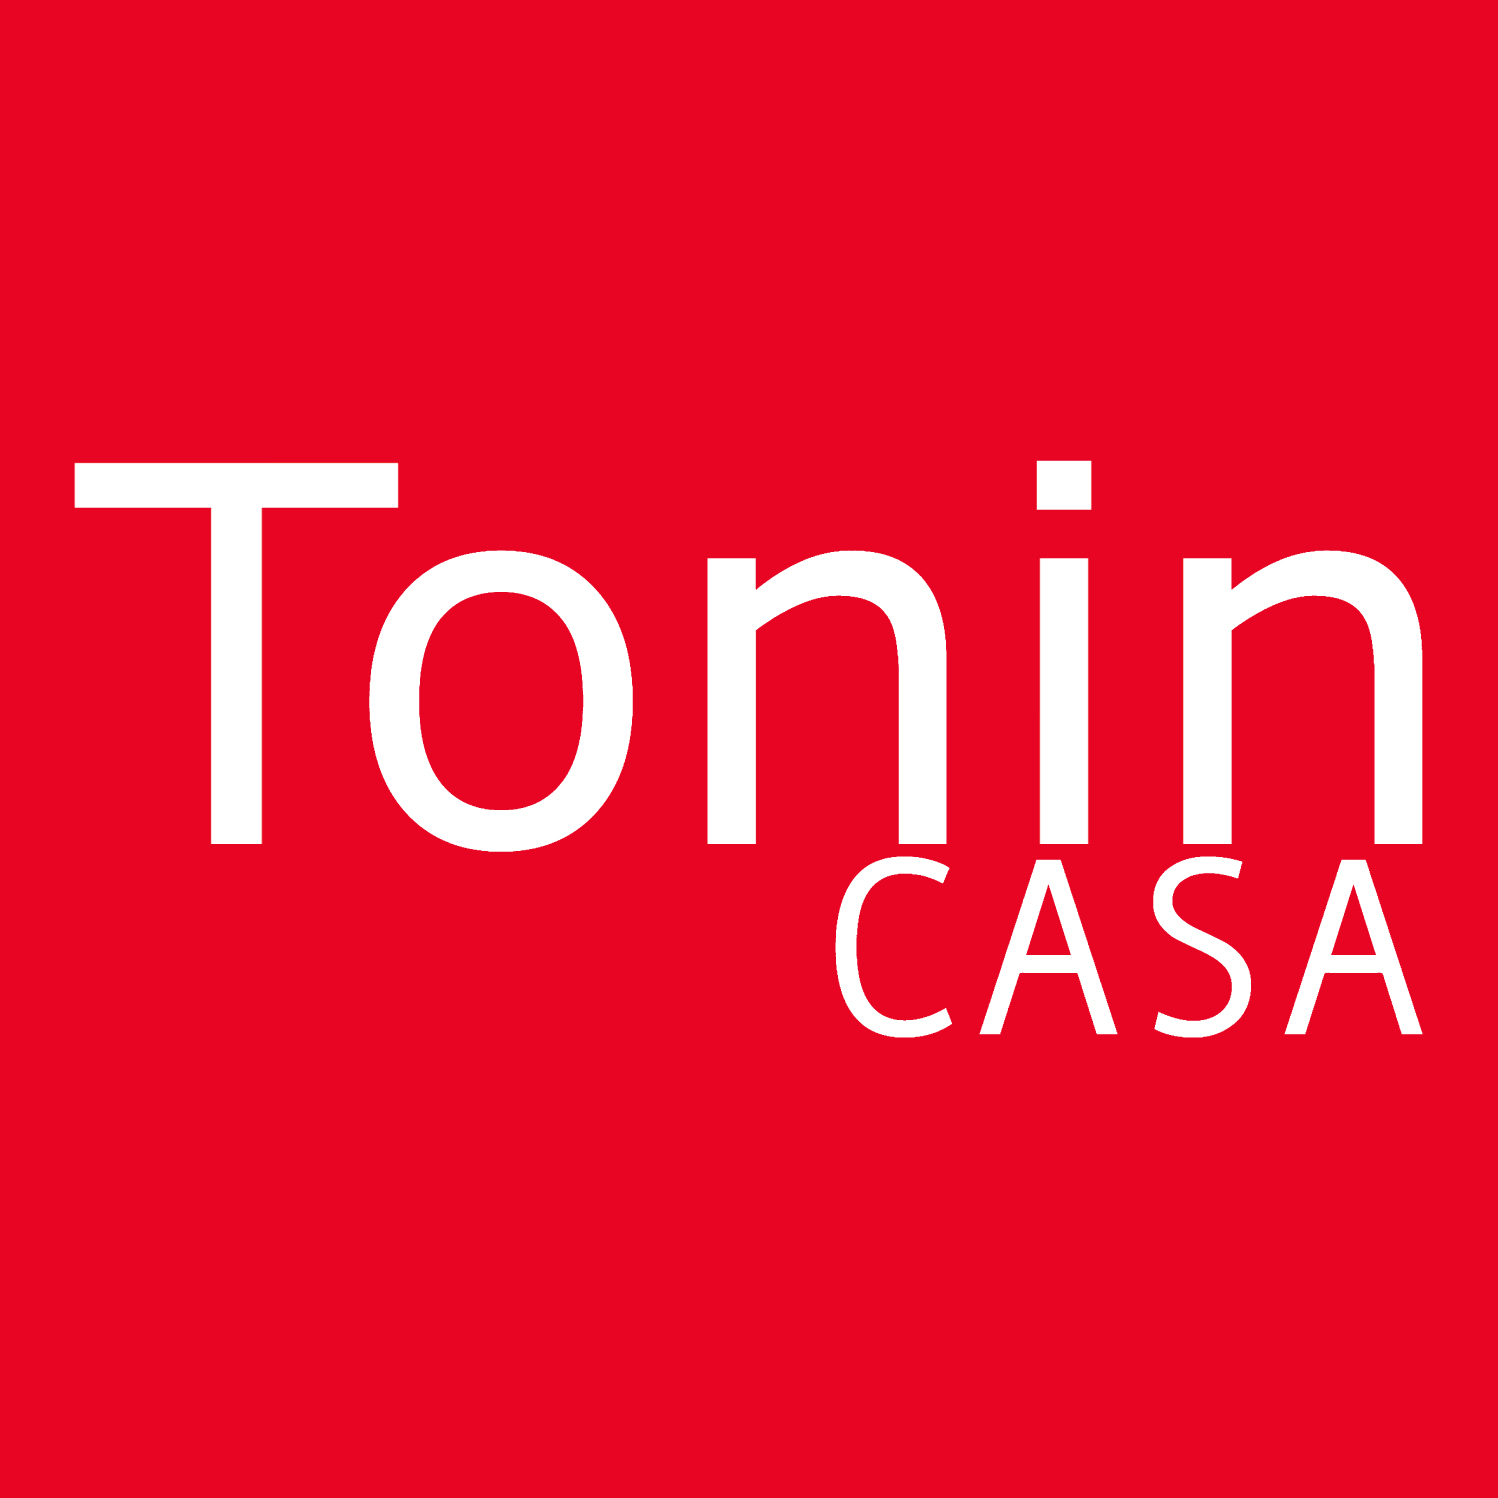 About Tonin Casa